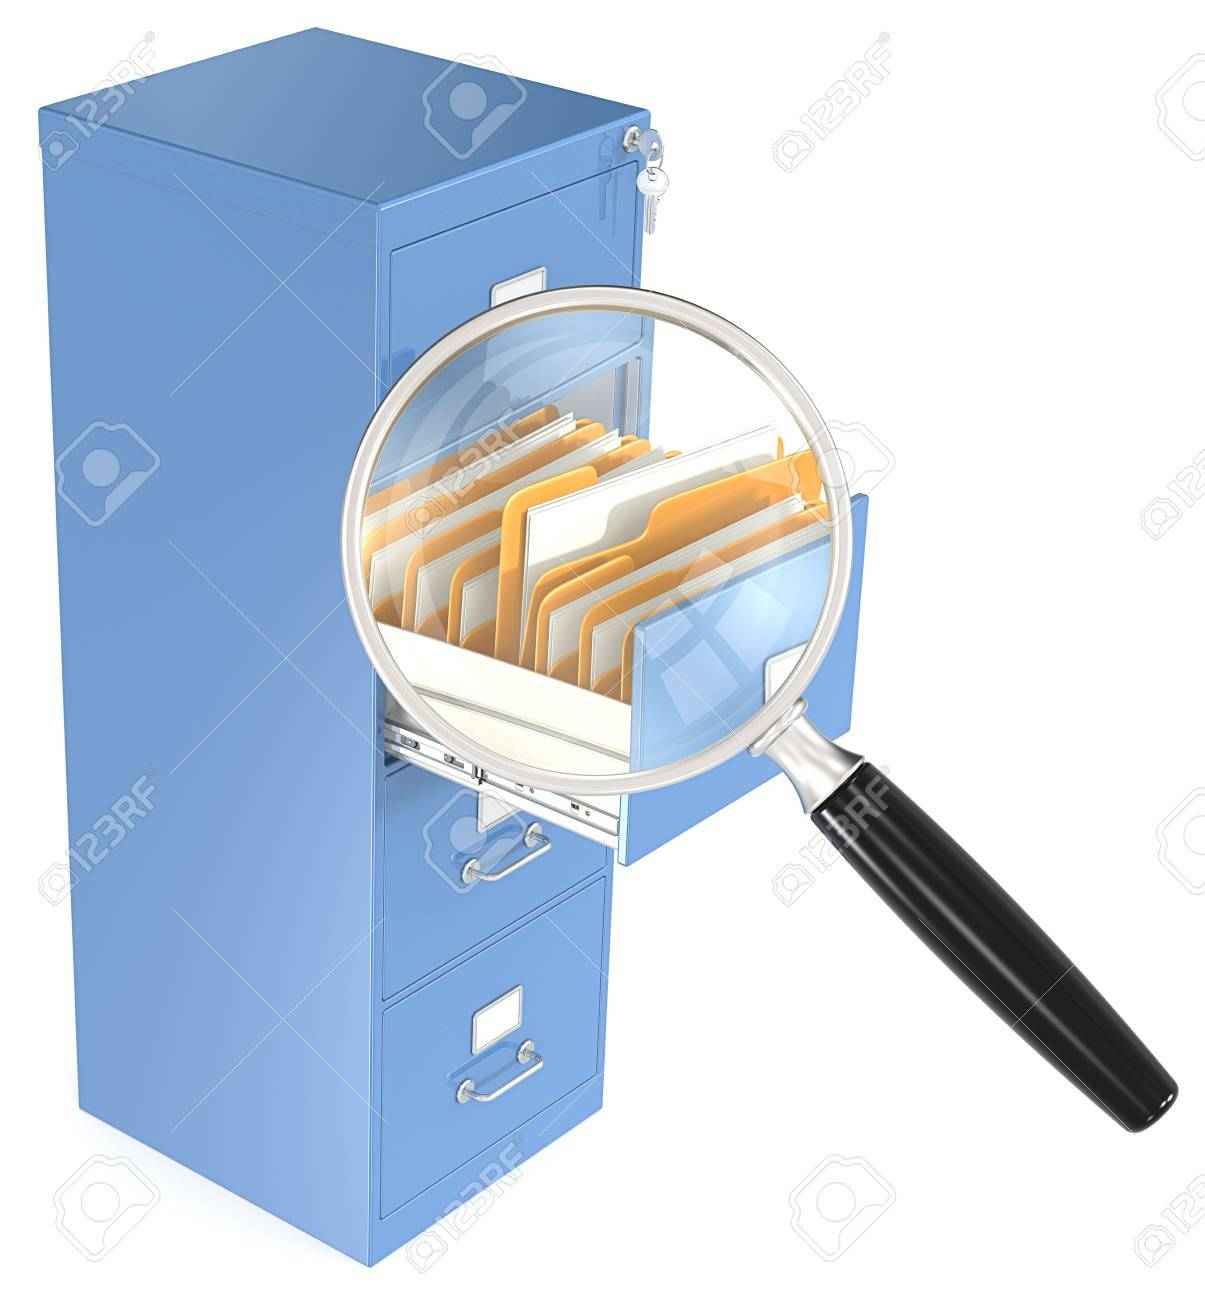 Magnifying glass over open file cabinet drawer Stock Photo - 24477801